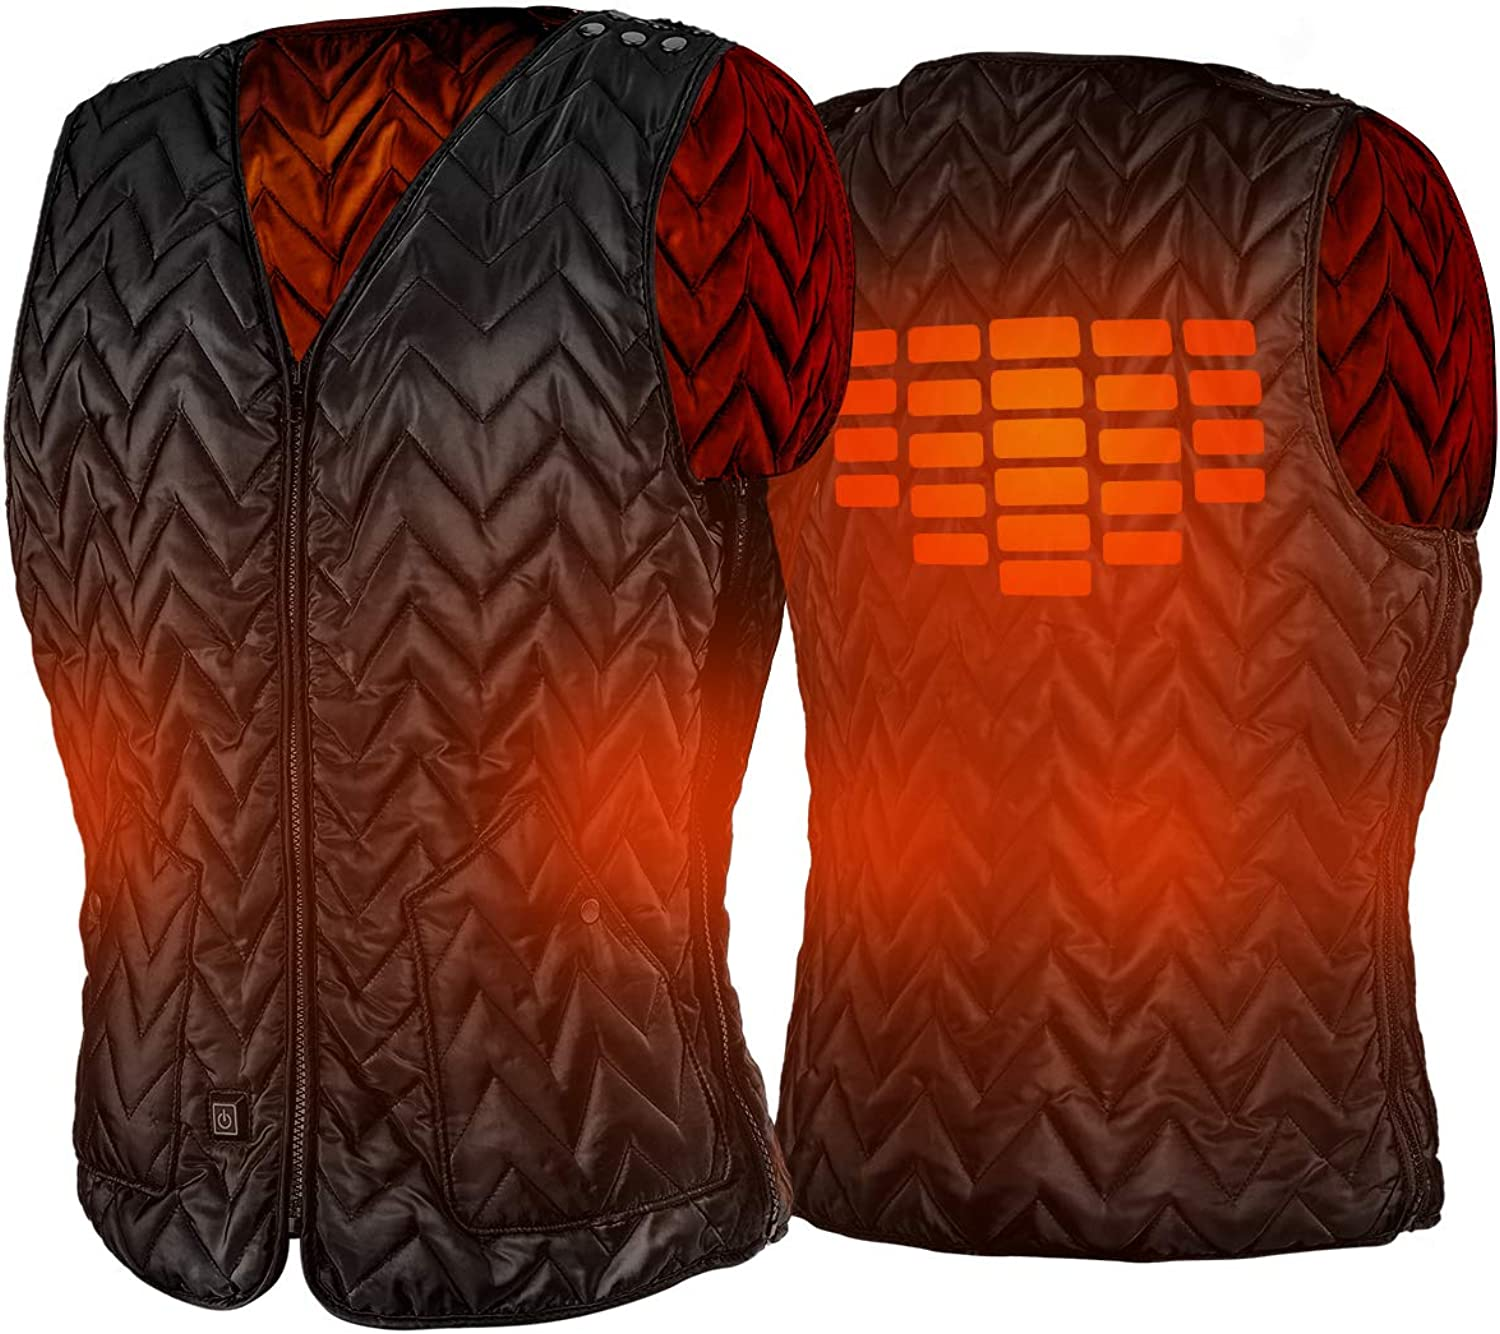 5 Heating Zones Washable, batteries not included USB Charging Mode Super Thermal Protection AiBast Heated Vest Comfortable Materials Heated Clothing With Rapid Heating Outdoor Heated Vest